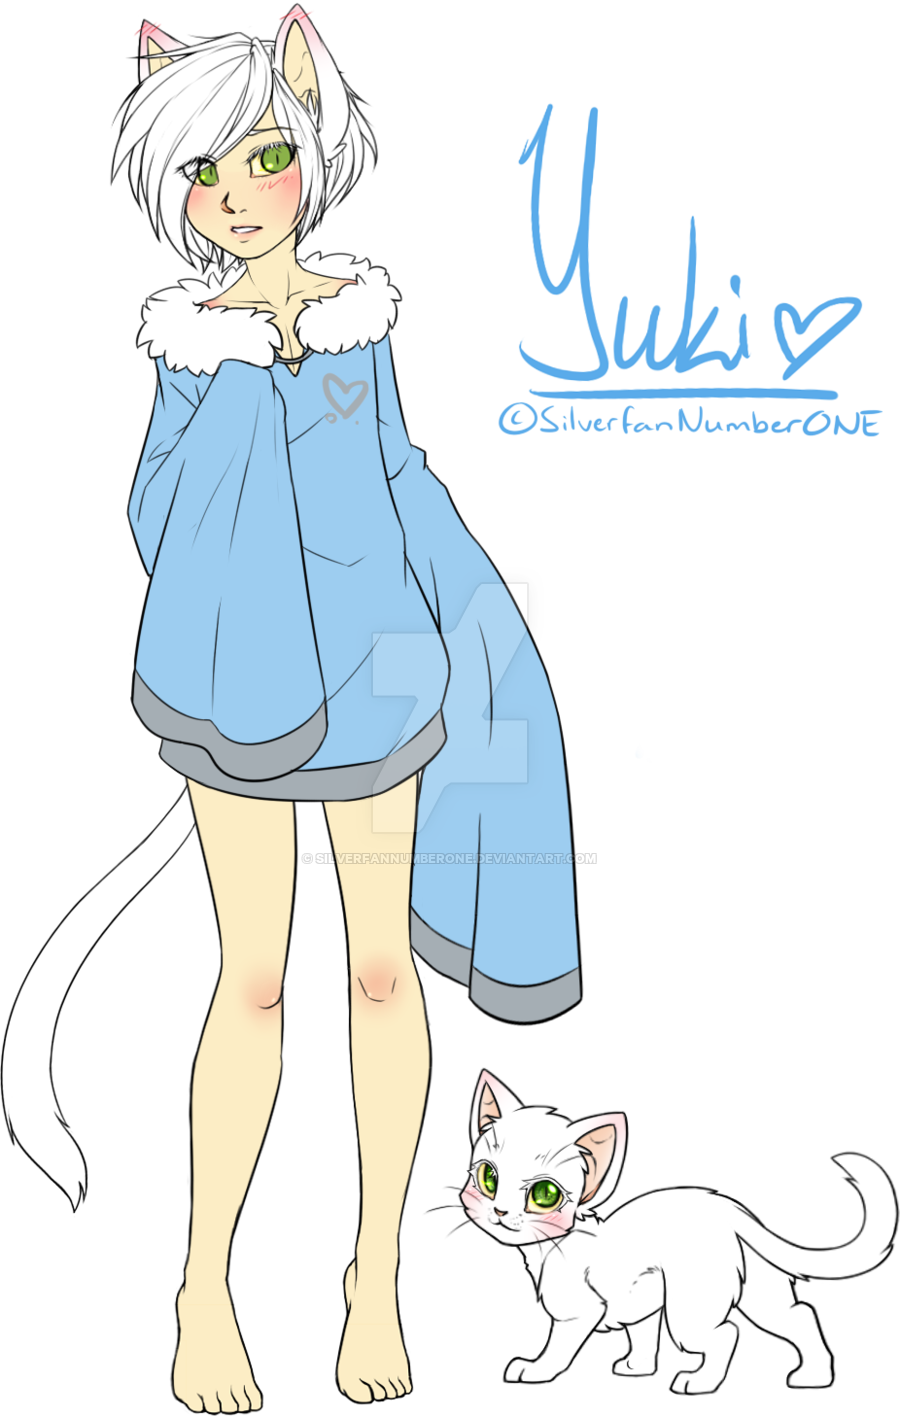 Shy drawing base. Human neko boy yuki